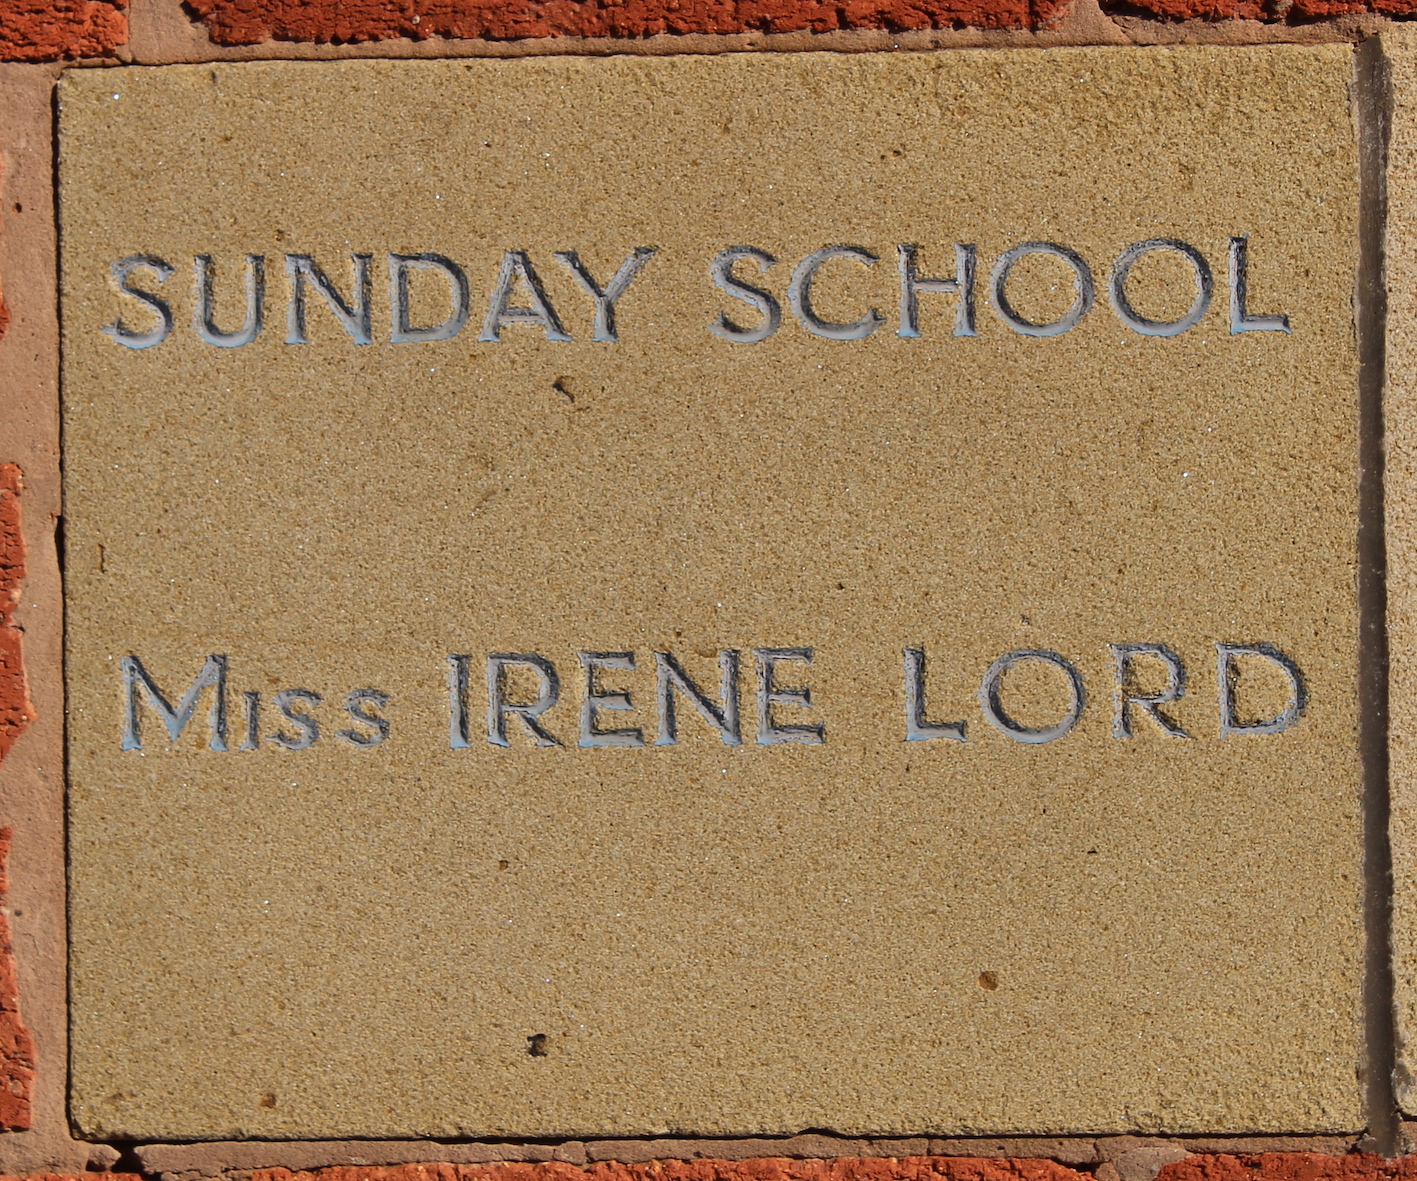 Memorial stone laid by Miss Irene Lord